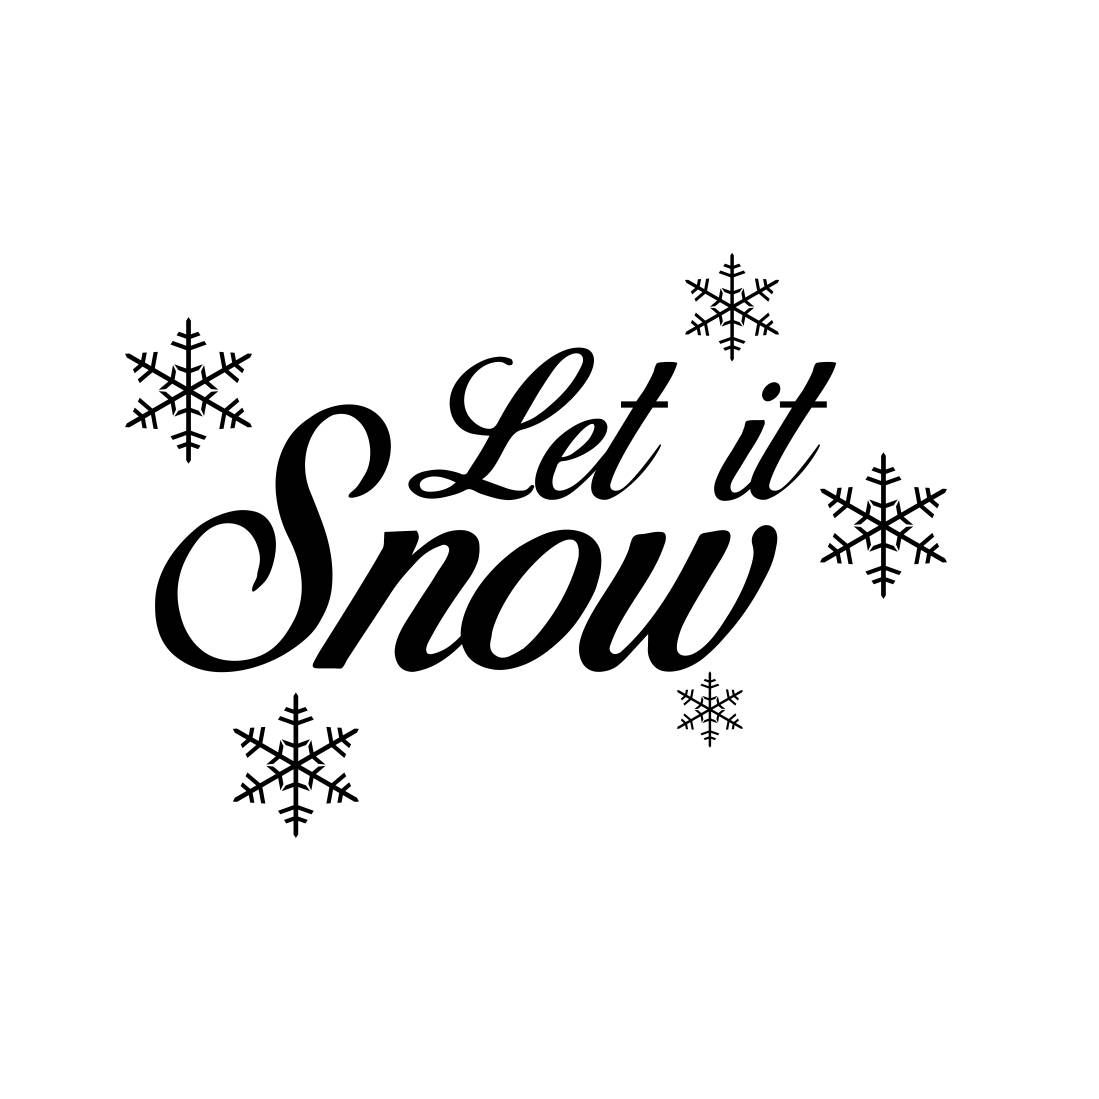 Let Is Snow Snowflakes Christmas Graphics Svg Dxf Eps Png Cdr Ai Pdf Vector Art Clipart Instant Download Digi Christmas Typography Christmas Graphics Lettering